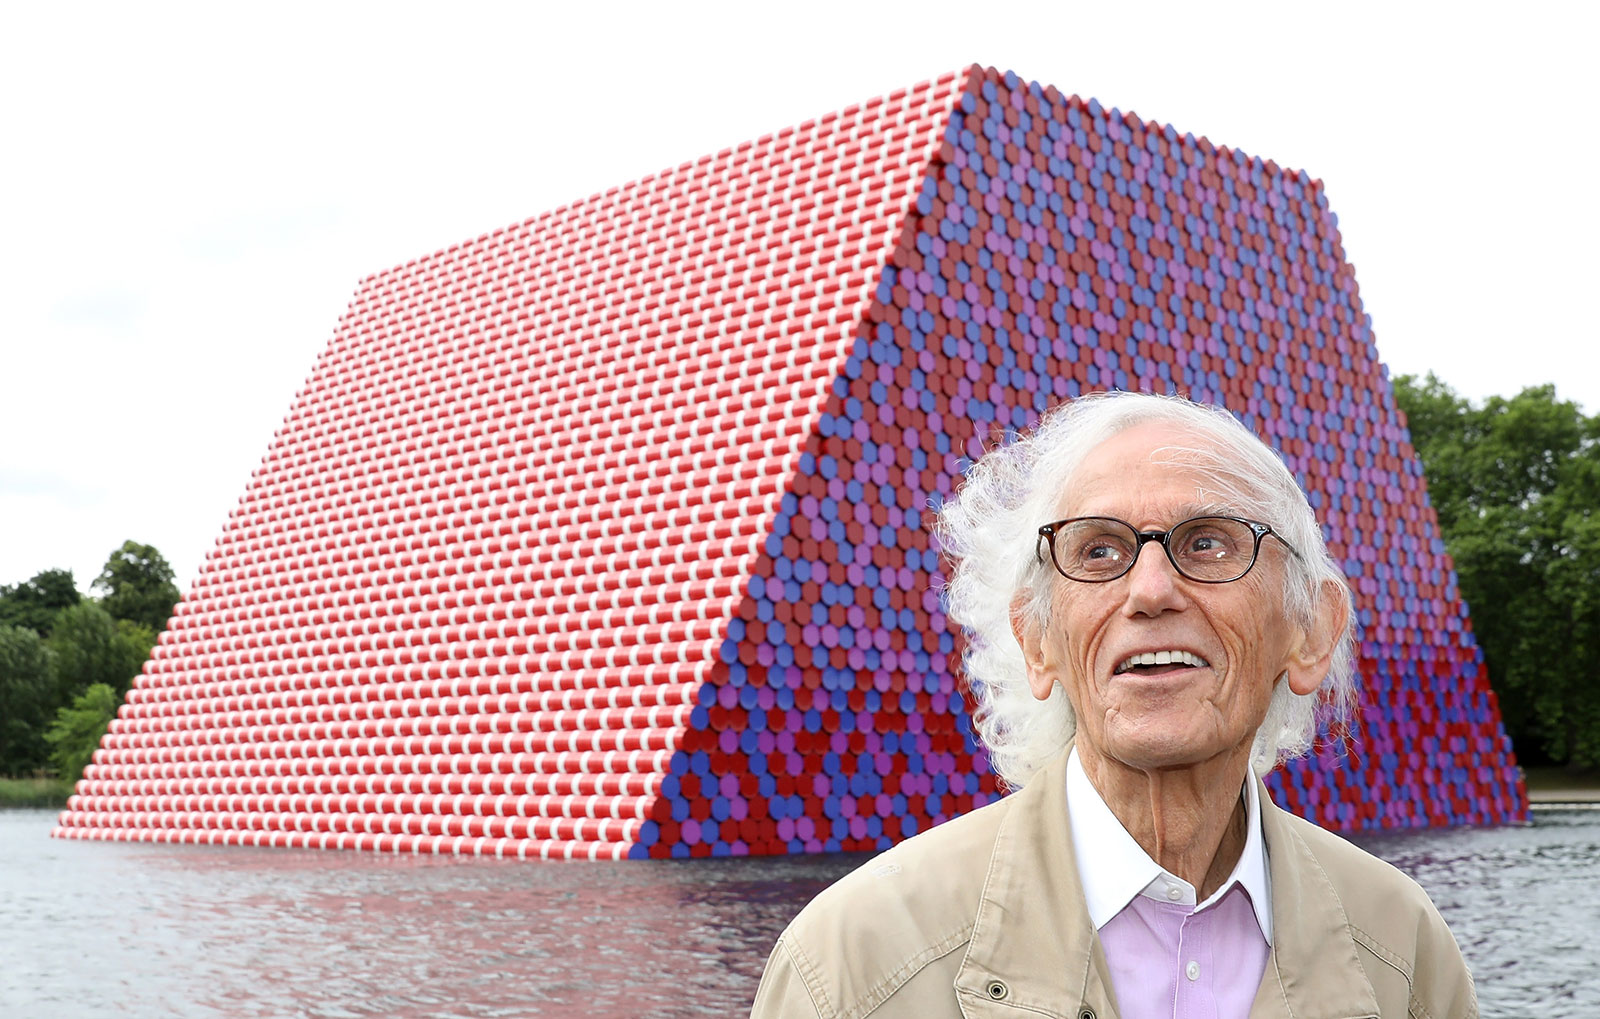 Christo pictured at the <em>London Mastaba,</em> 2018. Photography: Tim Whitby / Getty